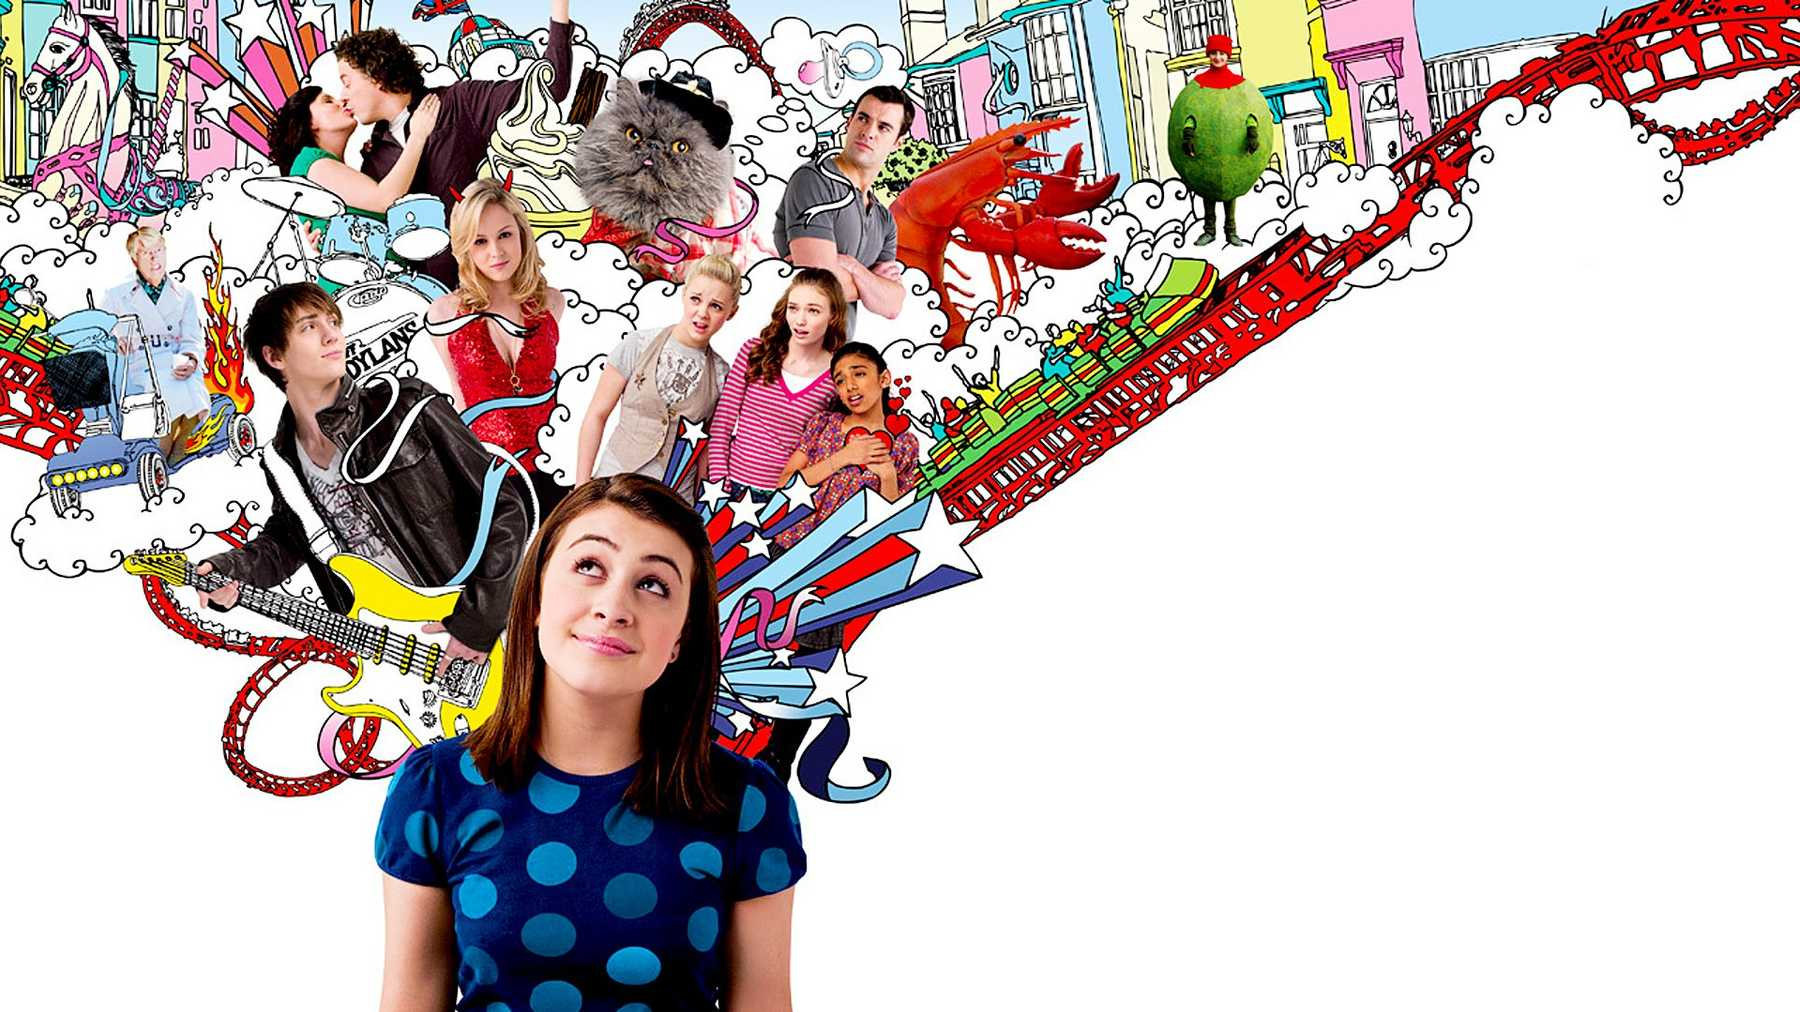 Angus Thongs And Perfect Snogging Cast angus, thongs and perfect snogging review | movie - empire